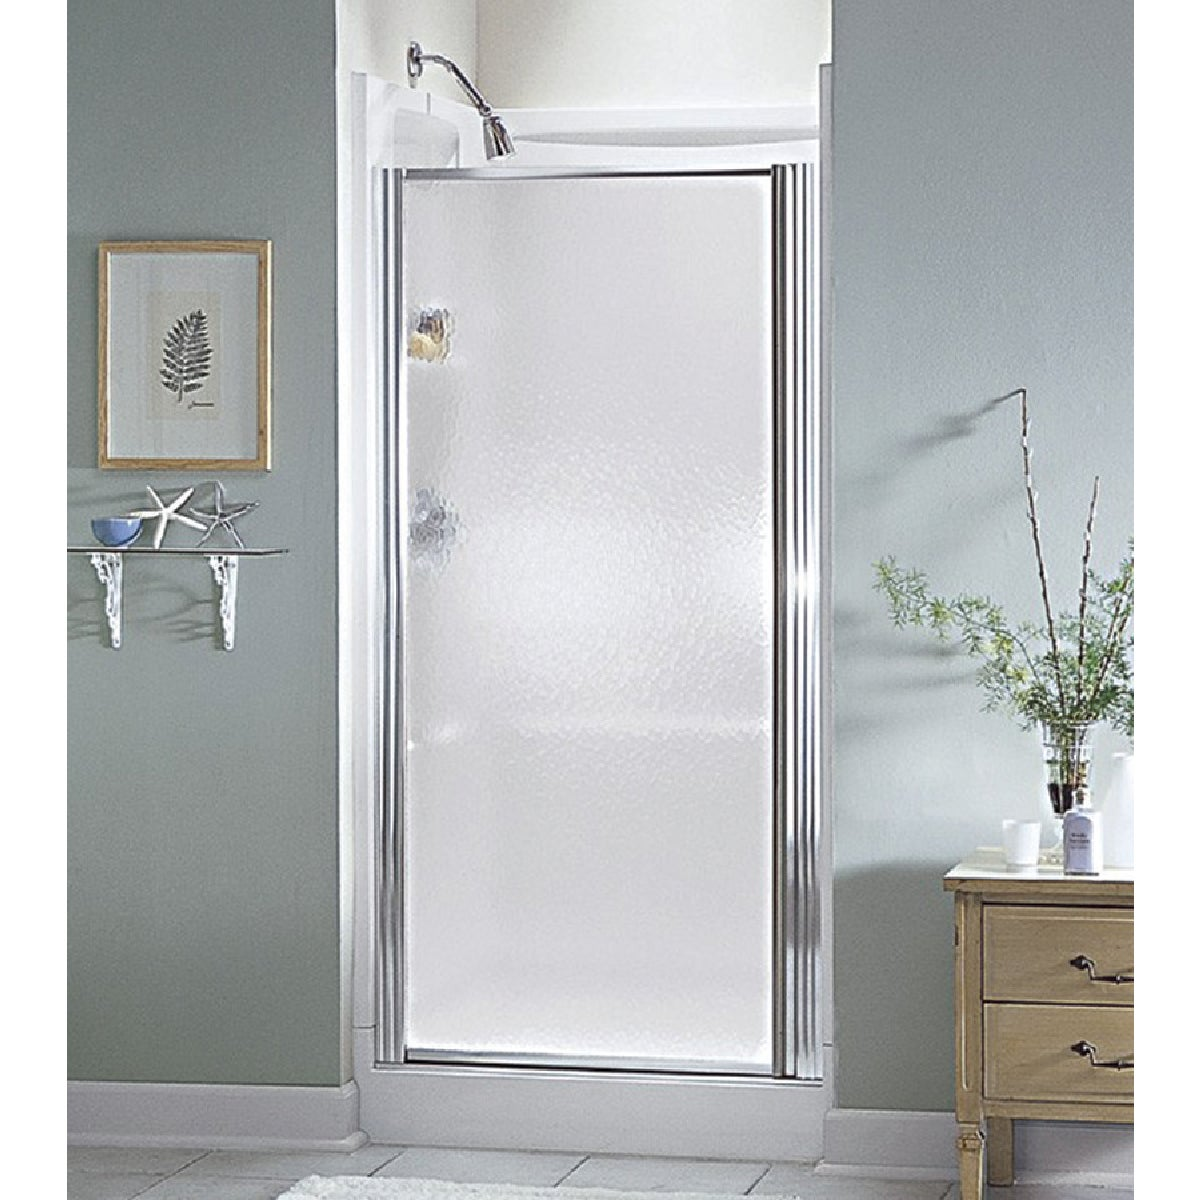 Sterling SILVER HINGED SHWR DOOR 950C-30S